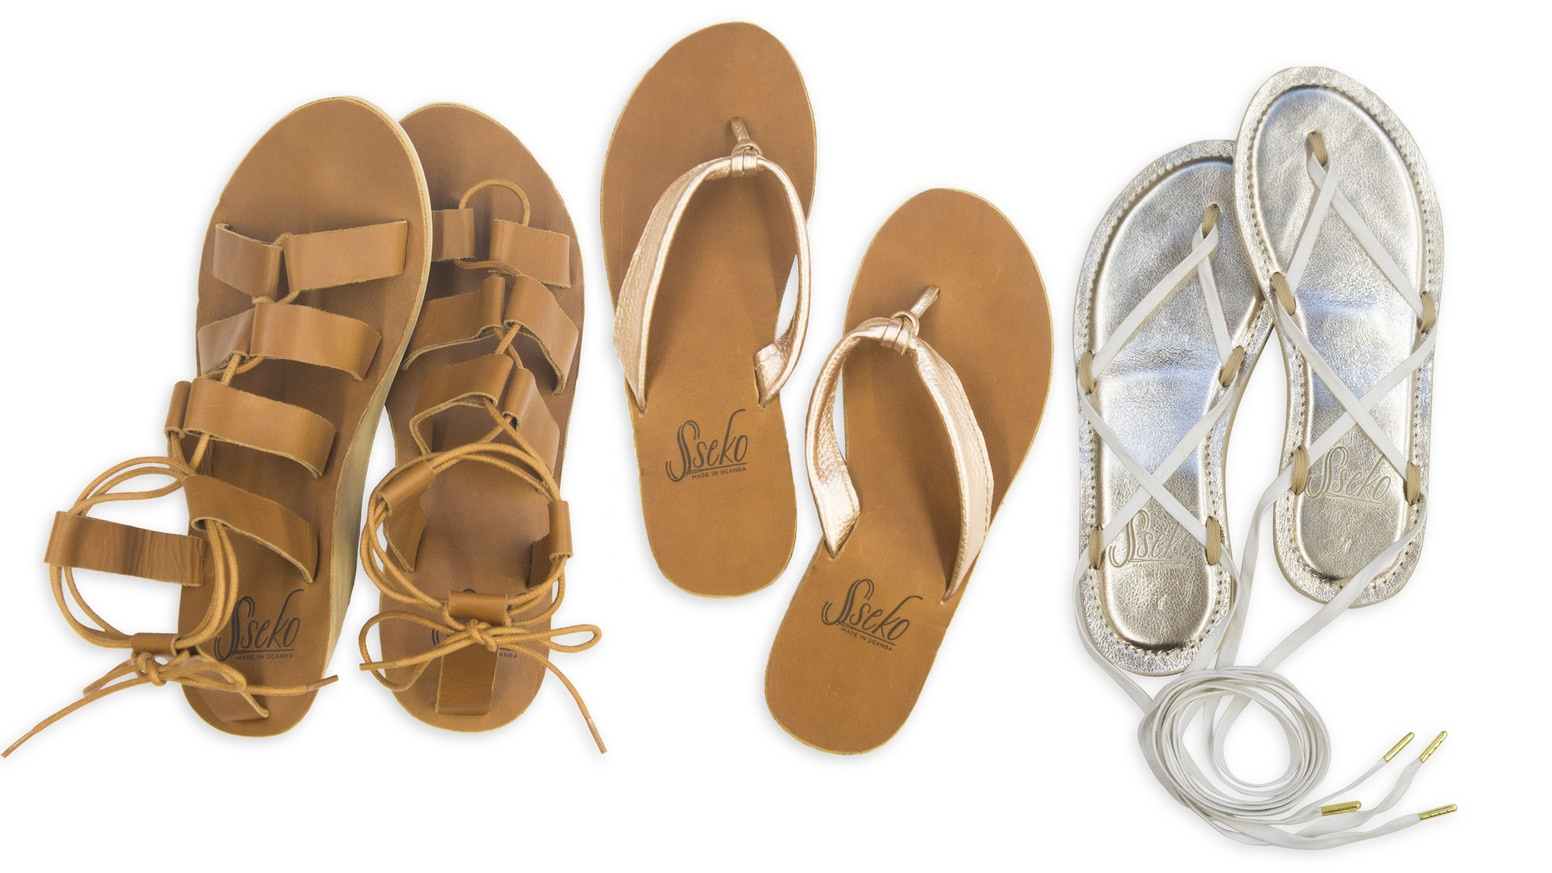 Customize your very own leather sandals, while giving a woman across the world the opportunity to pursue her dreams!